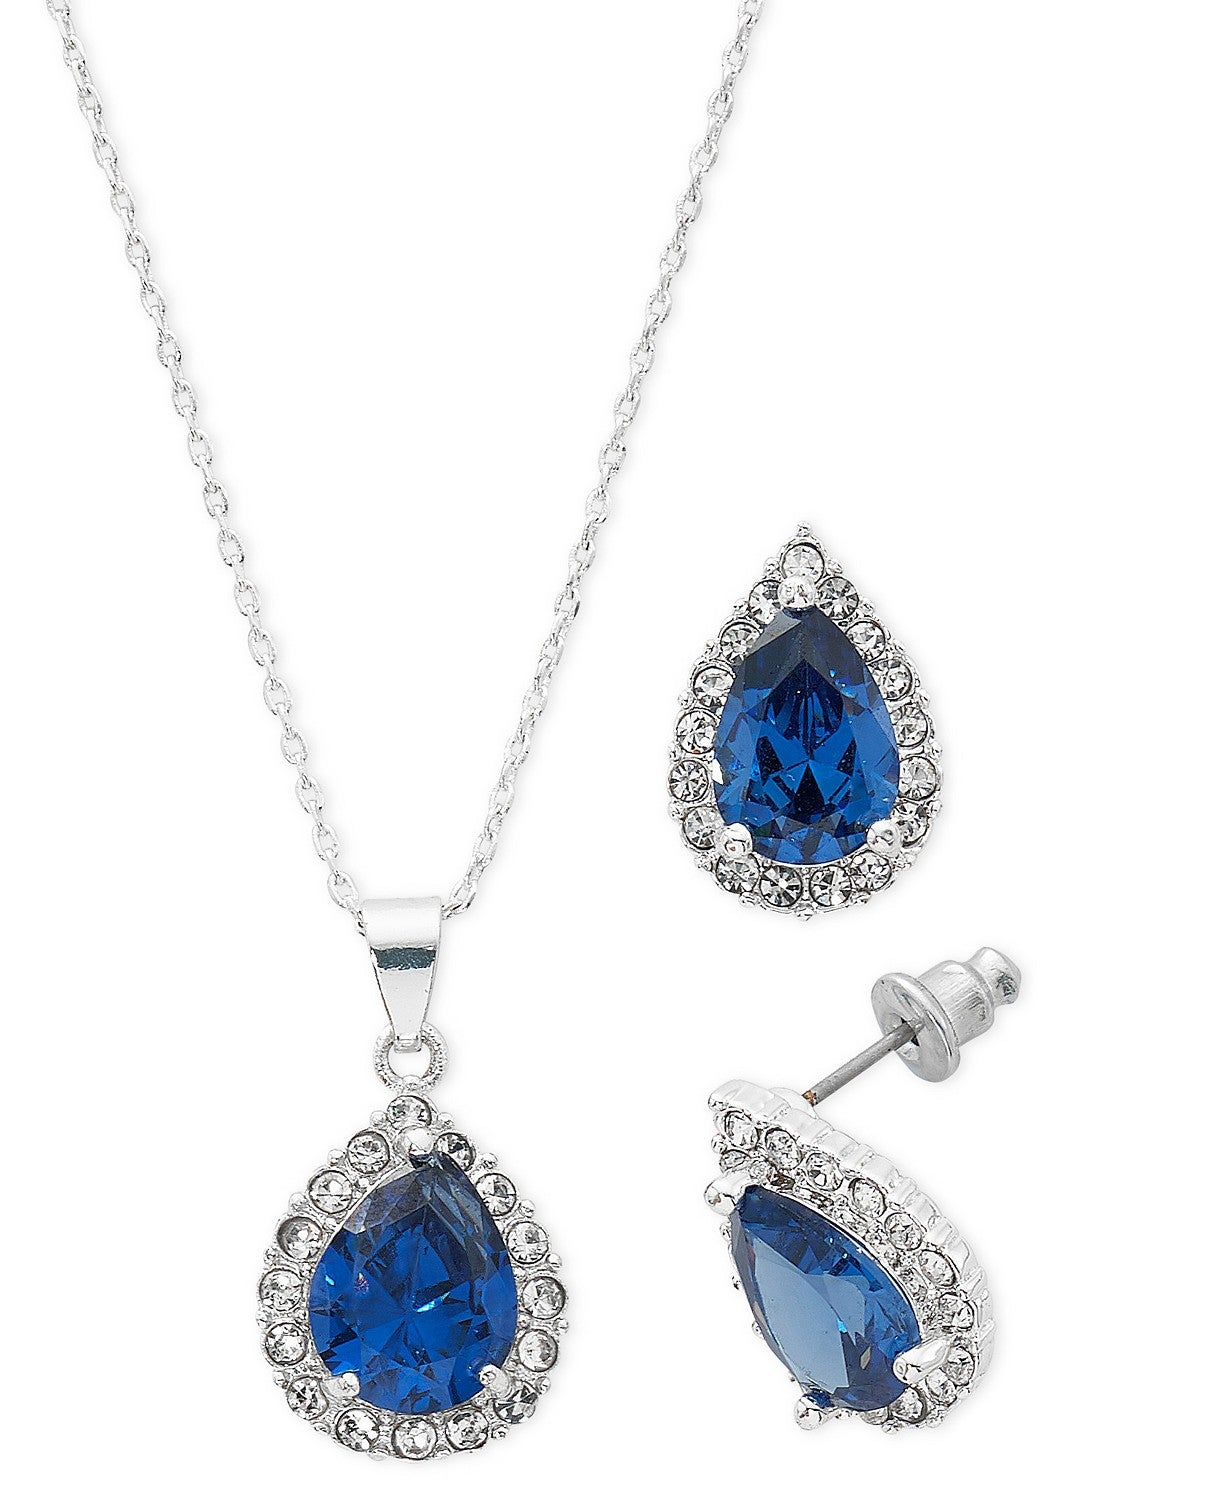 Fine Silver Plate Cubic Zirconia Teardrop Necklace and Stud Earring Set